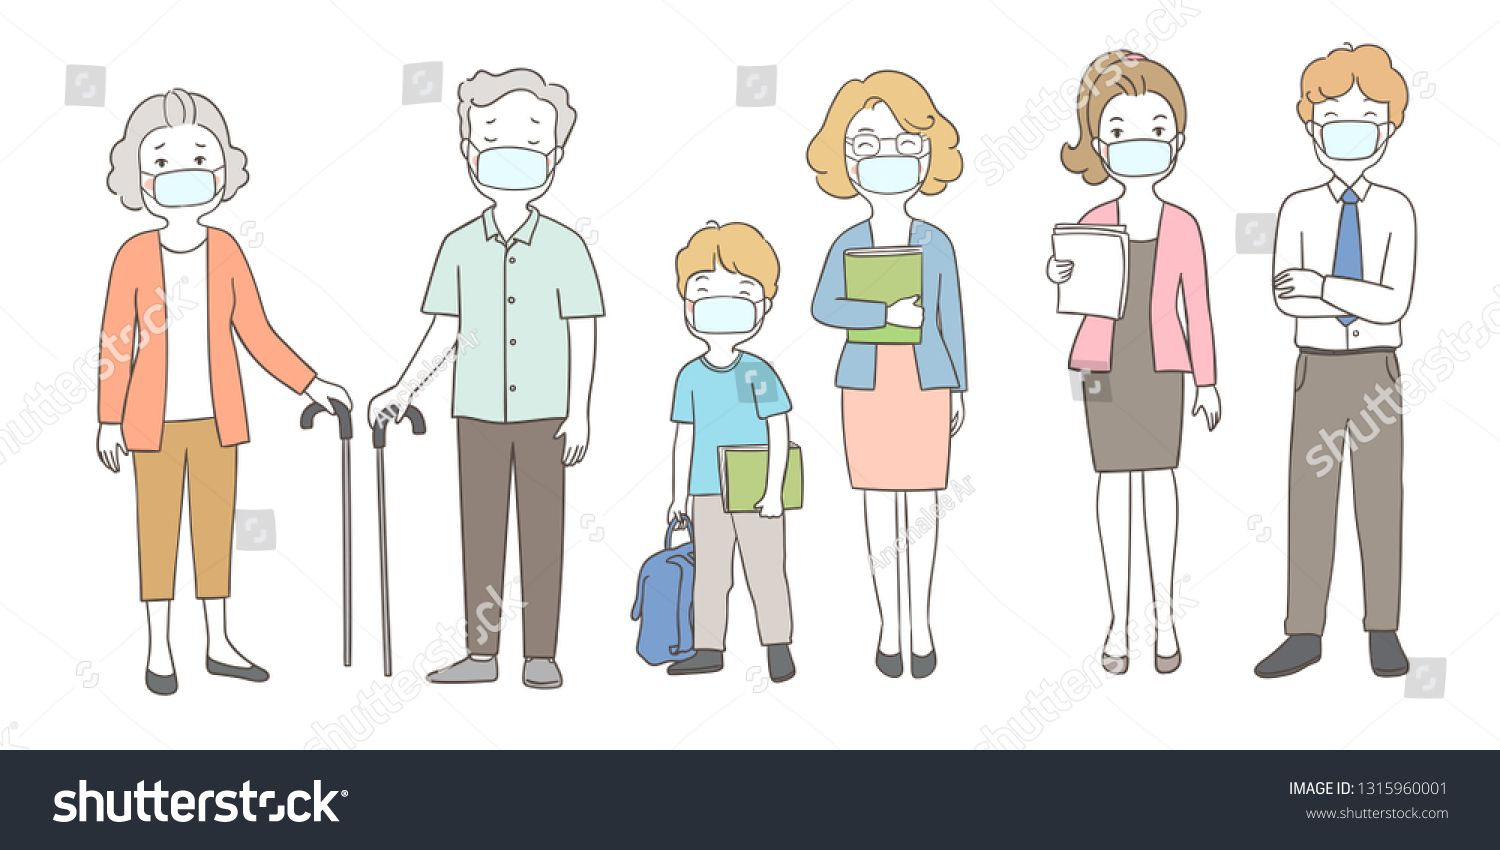 Draw Vector Illustration People Wearing Mask Protect From Pm2 5